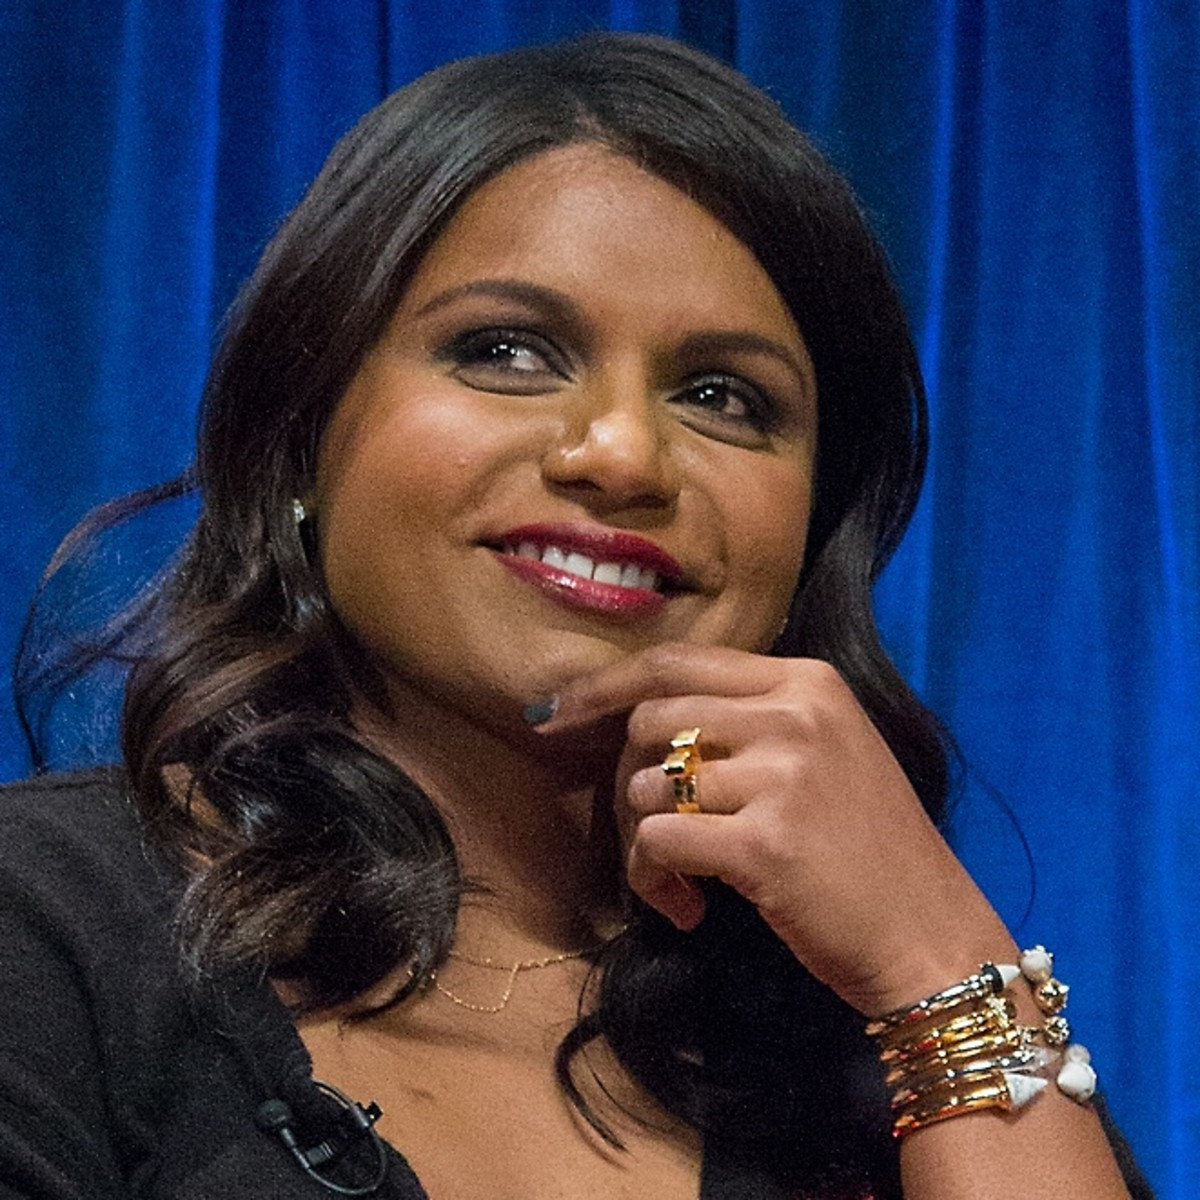 DO NOT USE: Mindy Kaling